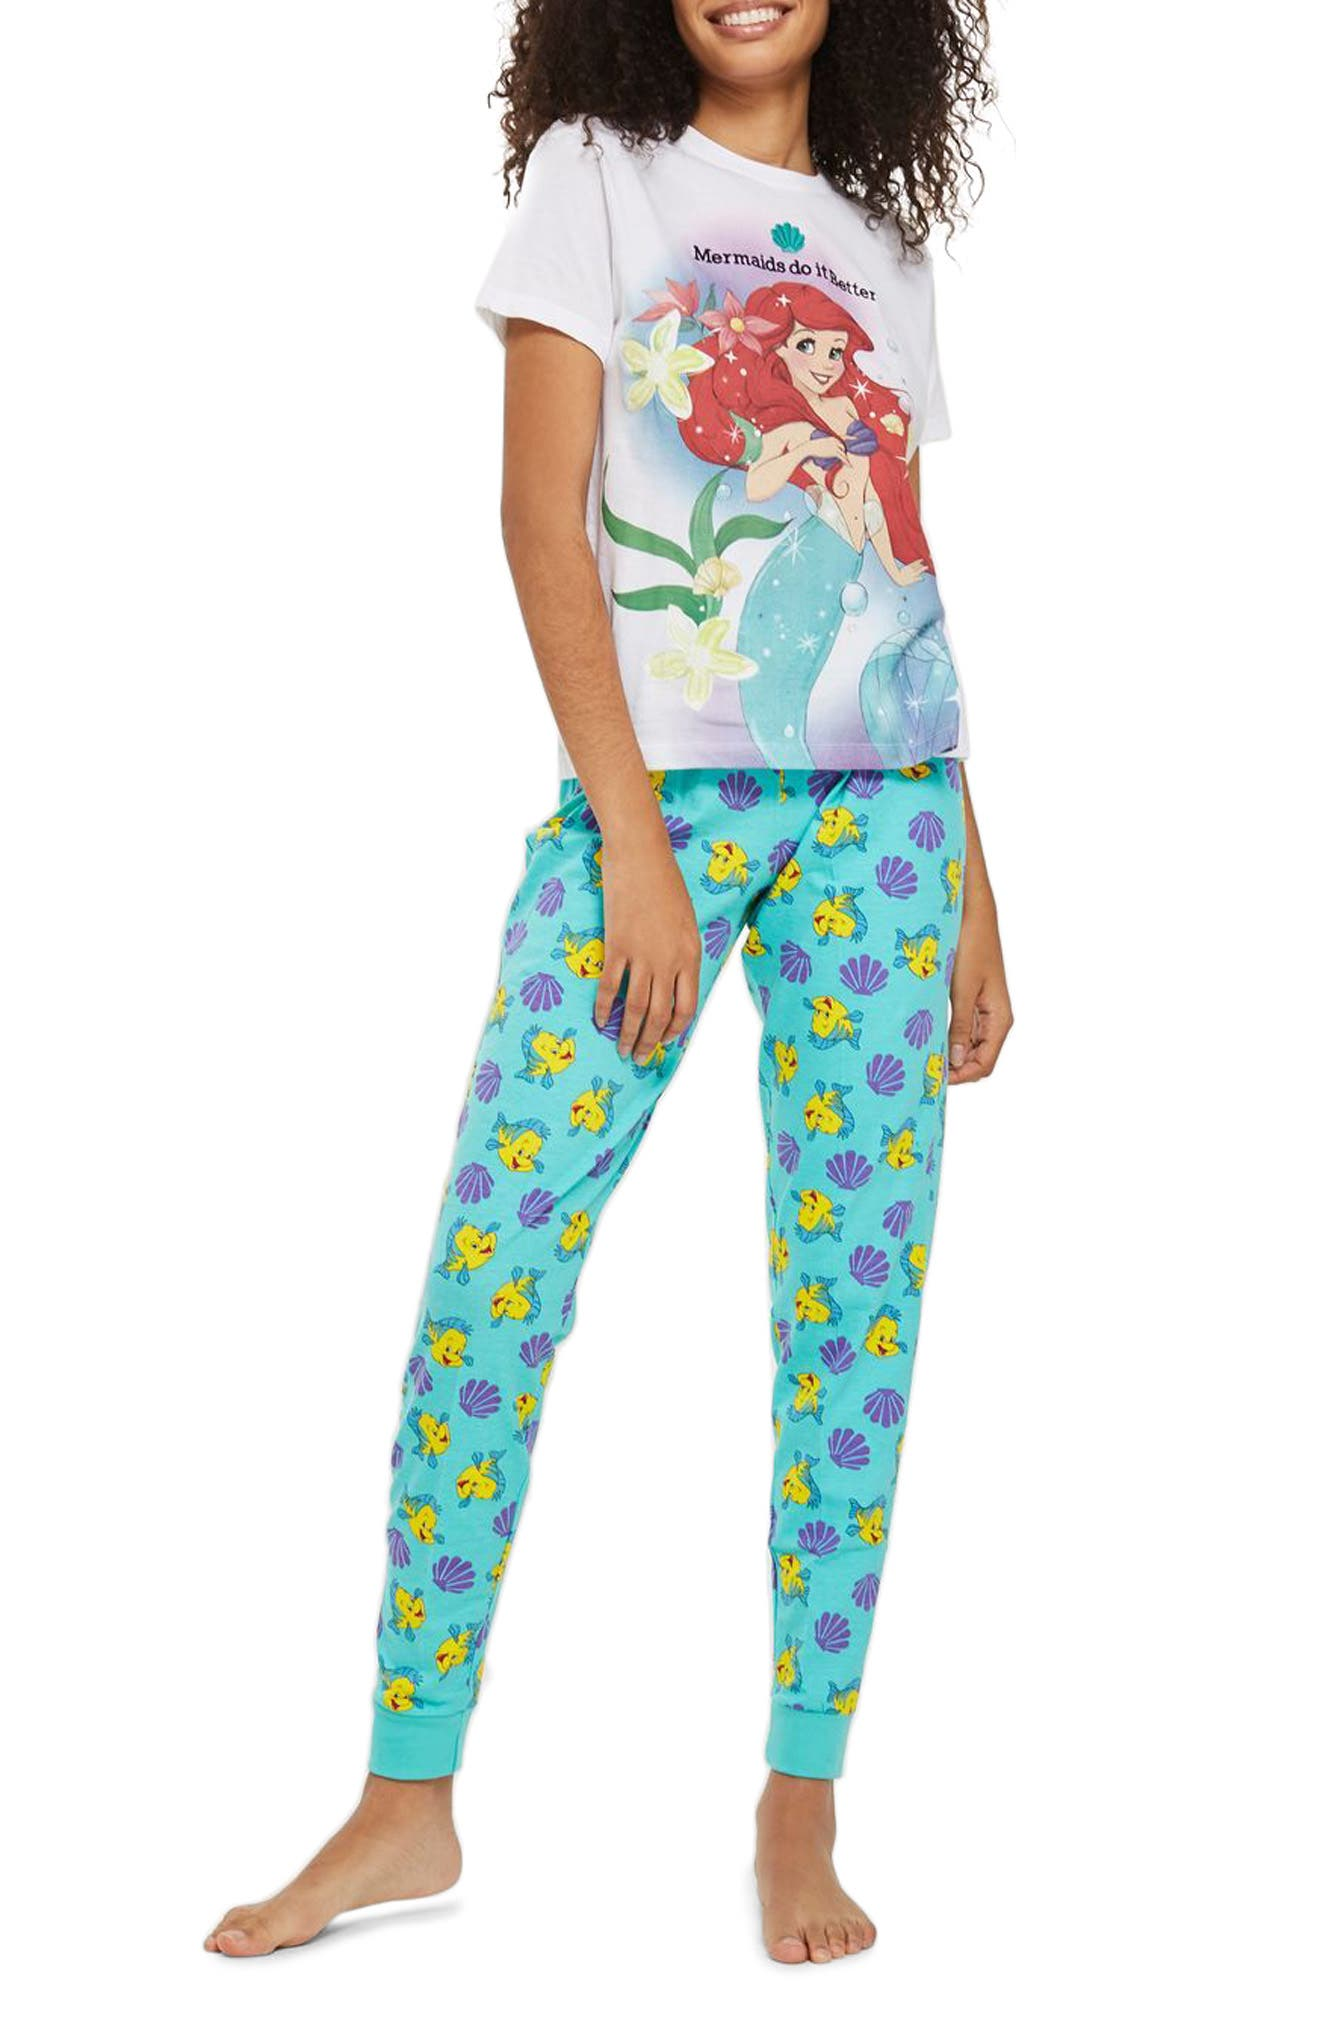 The Little Mermaid - Mermaids Do It Better Pajamas,                         Main,                         color, Blue Multi